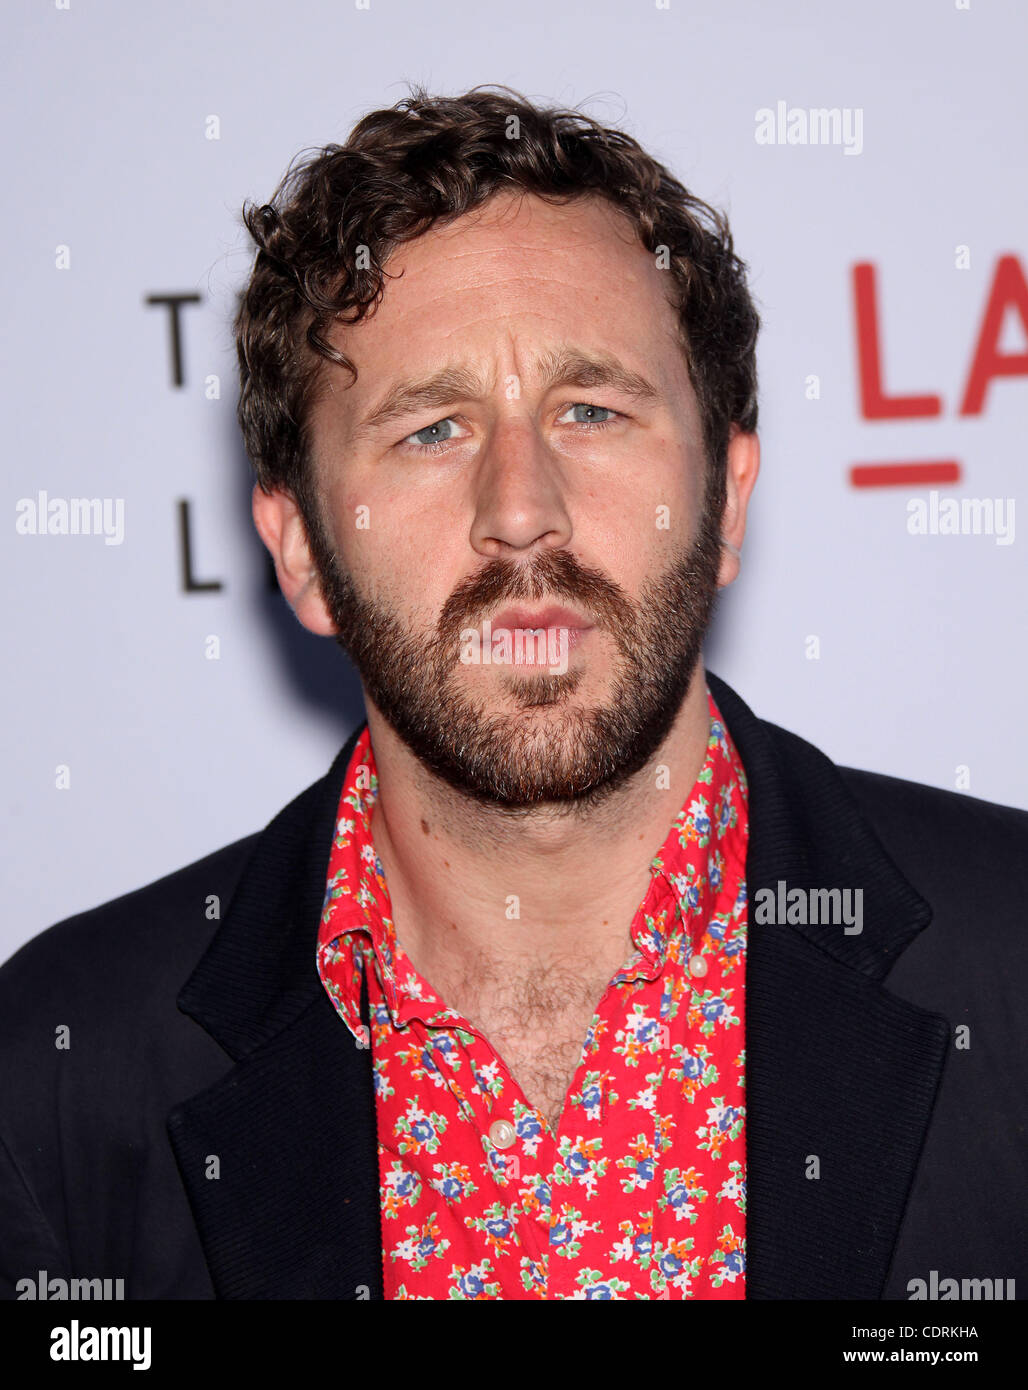 May 24, 2011 - Los Angeles, California, U.S. - CHRIS O'DOWD arrives for the premiere of the film 'Tree Of - Stock Image